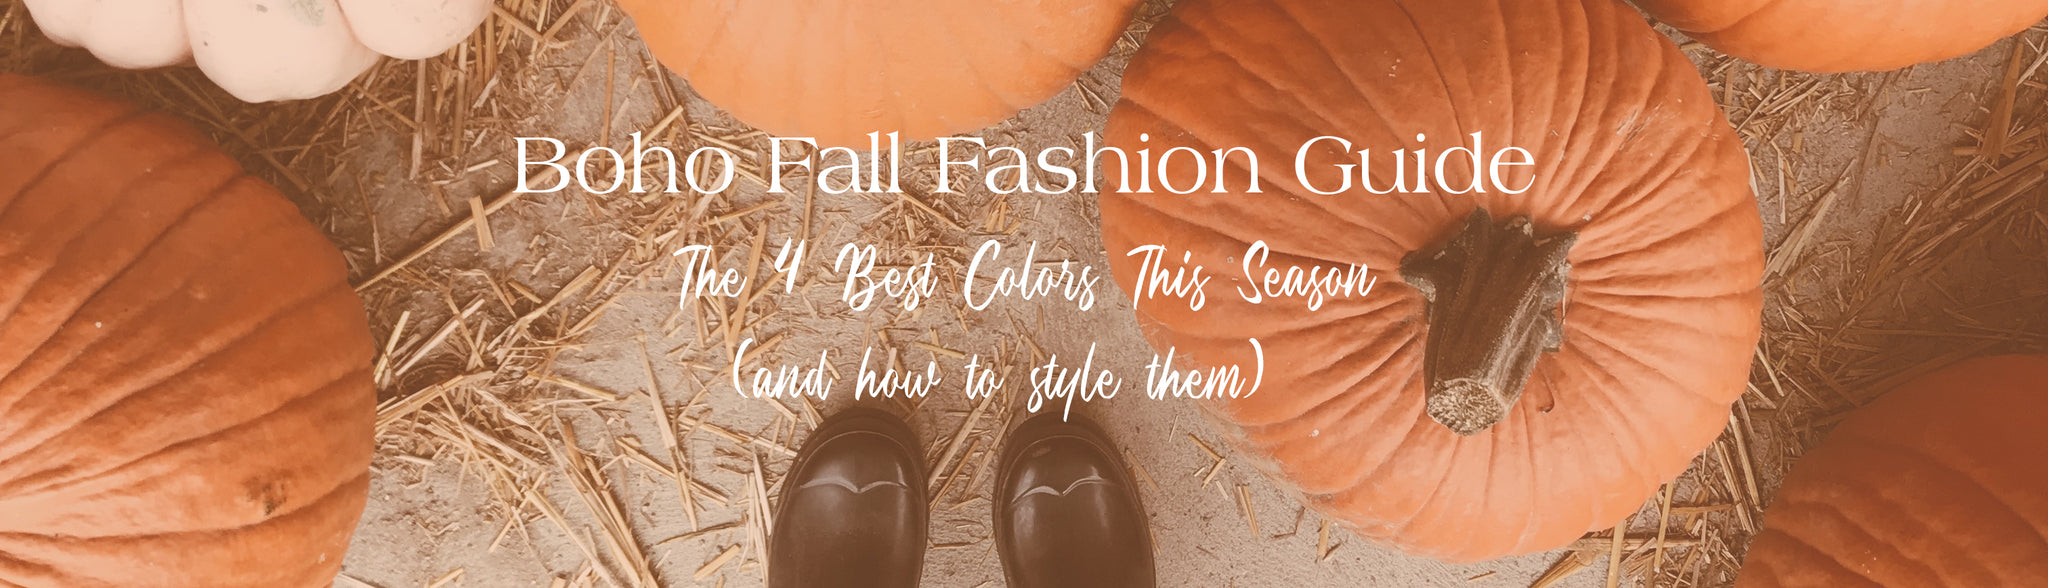 boho fall fashion guide best colors for fall outfit inspo